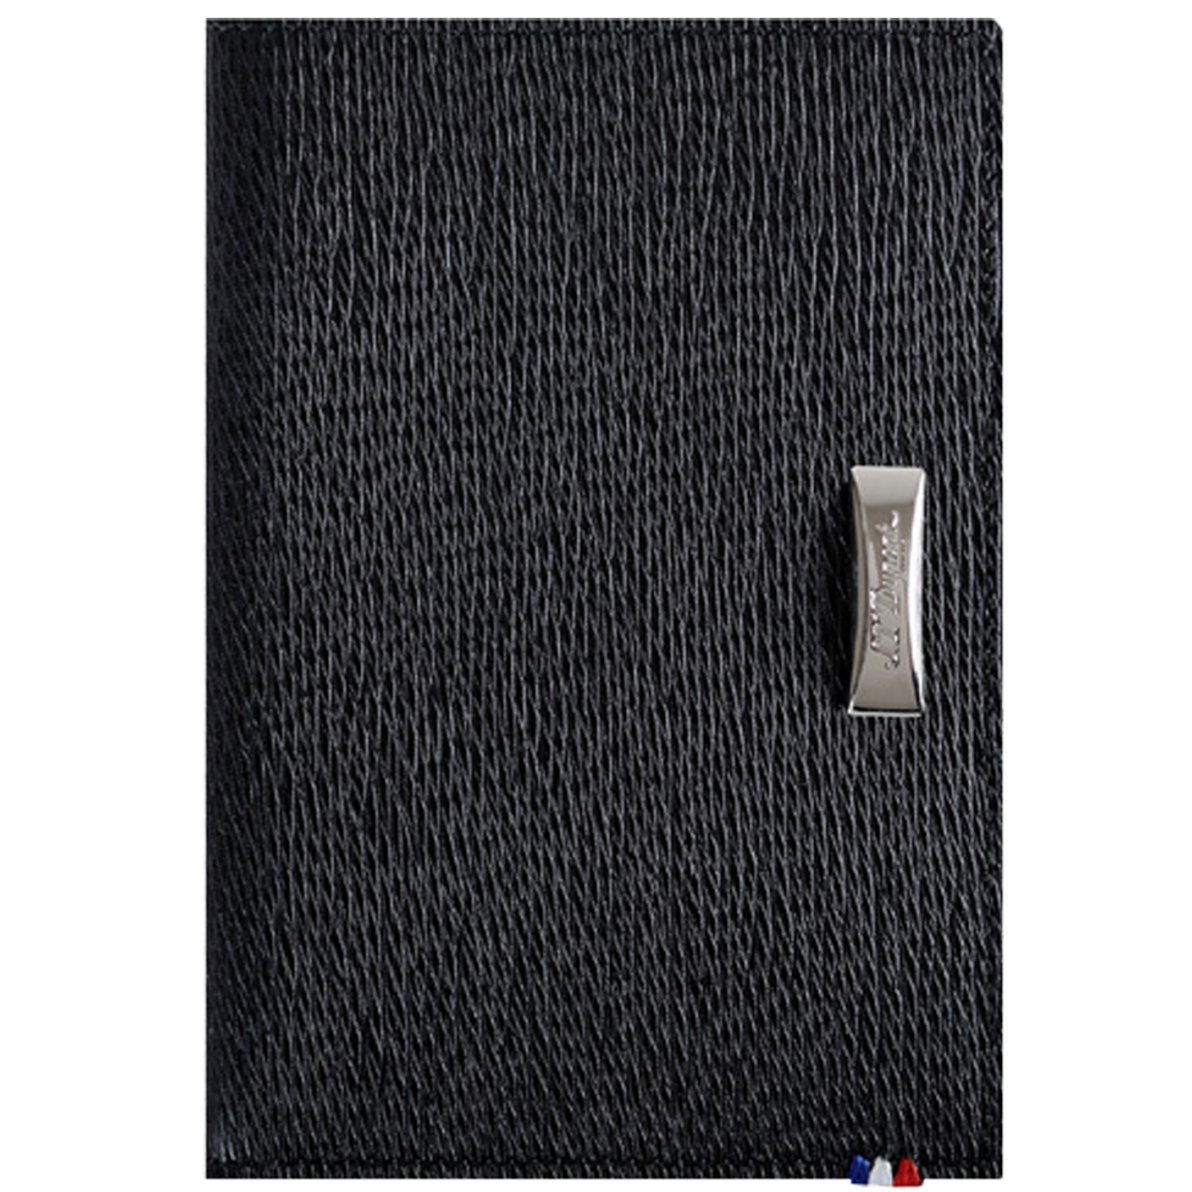 S.T. Dupont Black Contraste Leather Card Holder Wallet, 180313